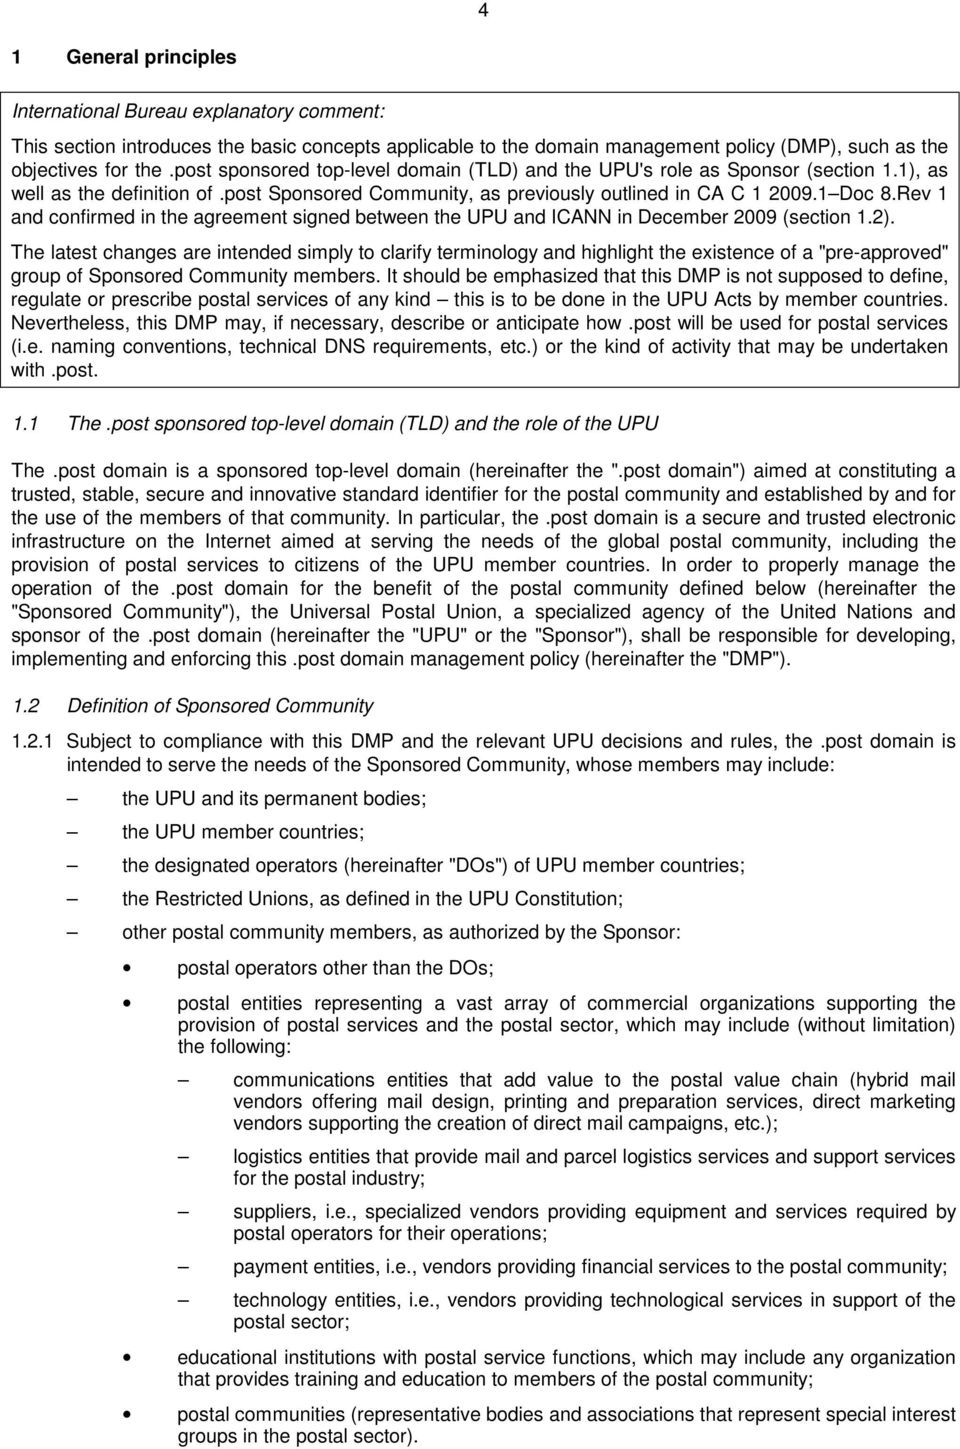 Rev 1 and confirmed in the agreement signed between the UPU and ICANN in December 2009 (section 1.2).